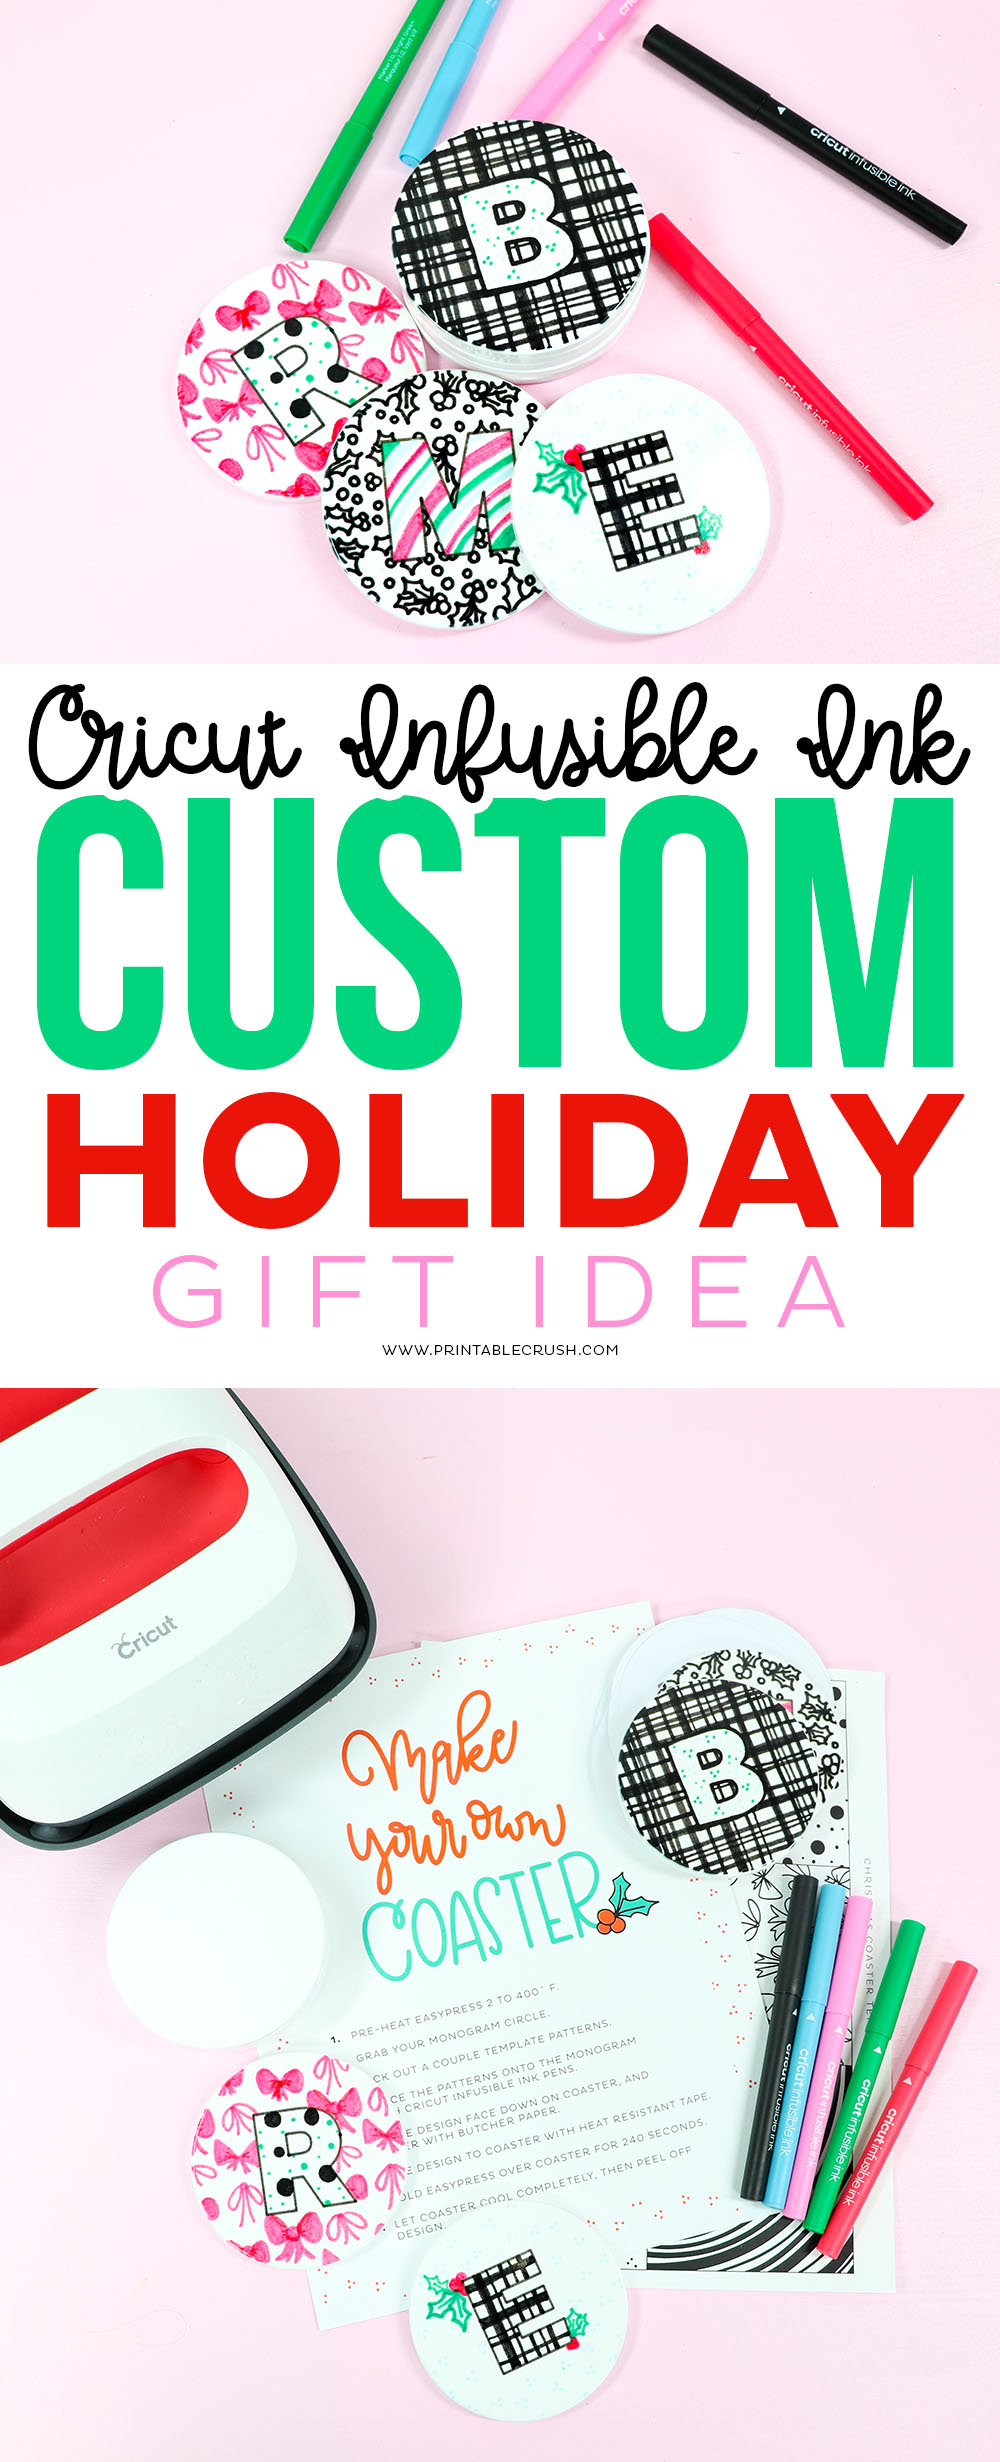 Custom Coasters - Cricut Holiday Gift Idea #cricutgiftidea #cricutholiday #cricutchristmasgift #customcoasters #cricutinfusibleink #infusibleink #cricutgift #cricutholidaygift #cricutcrafts